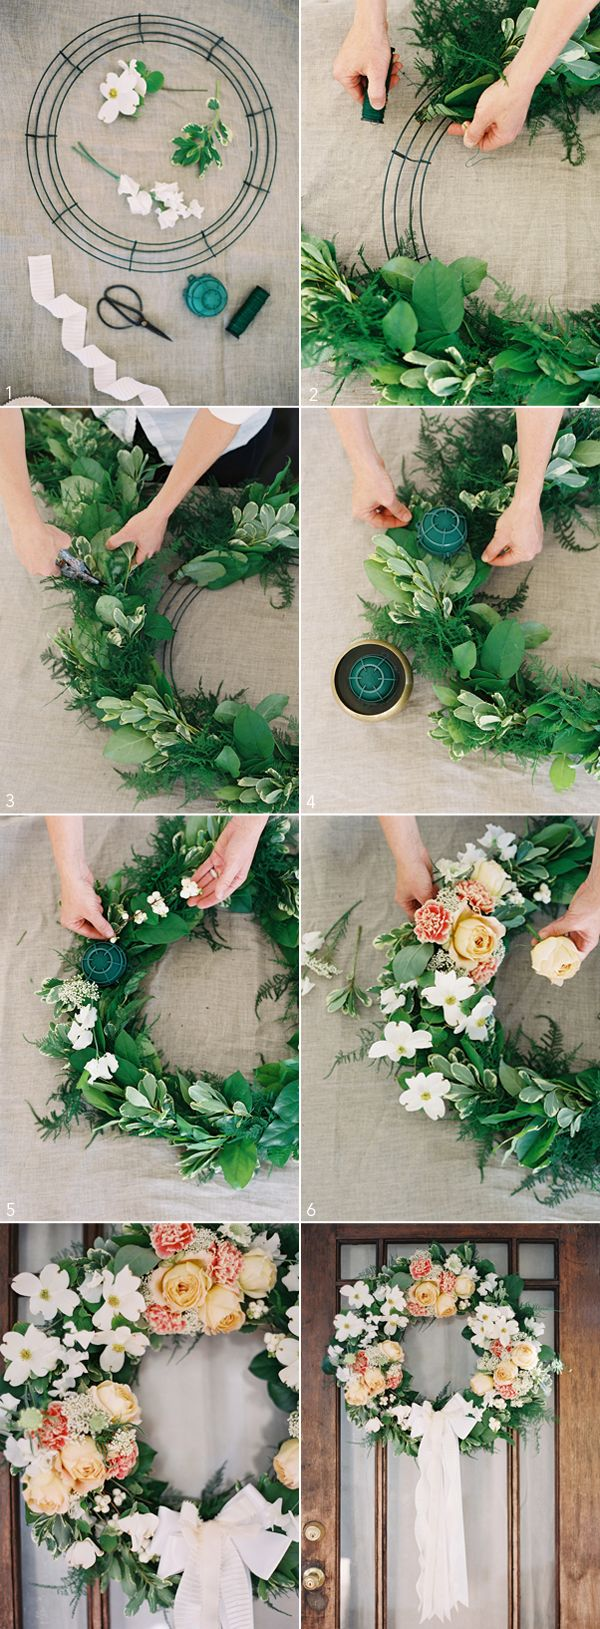 wonderful spring wedding decoration ideas DIY wedding wreath